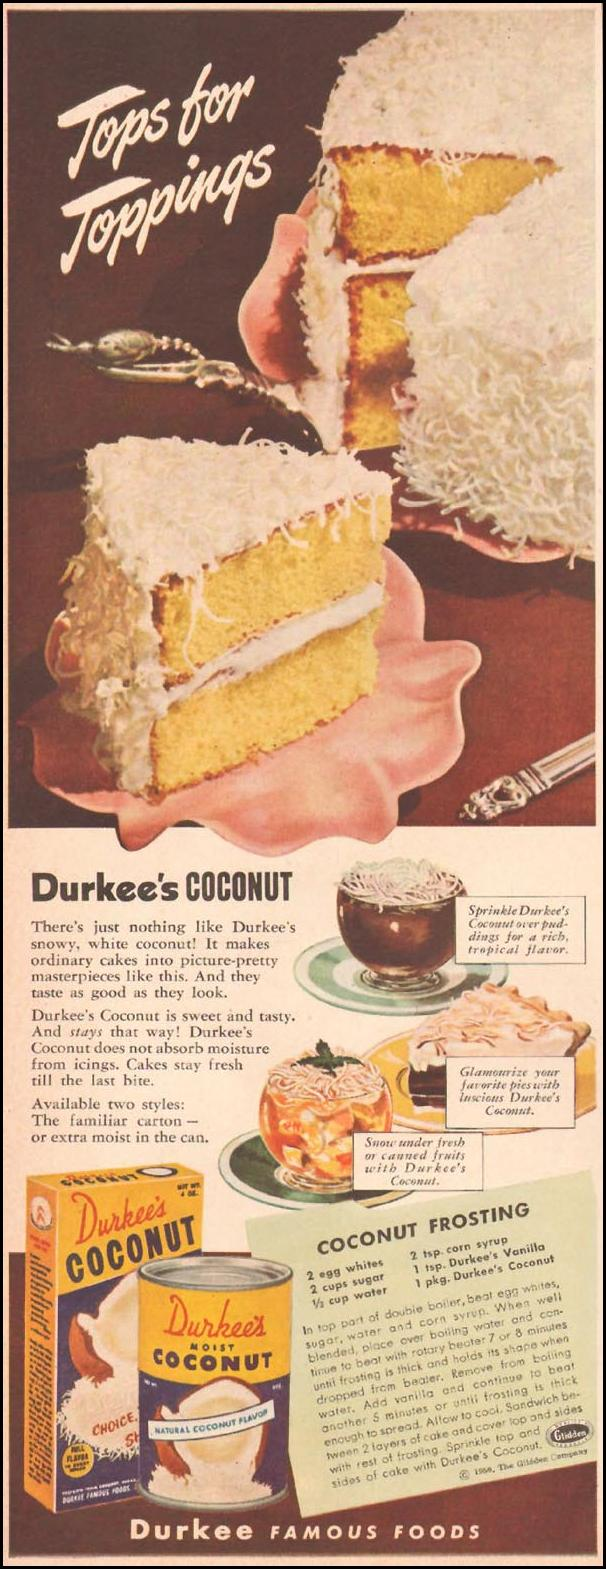 DURKEE'S COCONUT LADIES' HOME JOURNAL 11/01/1950 p. 80